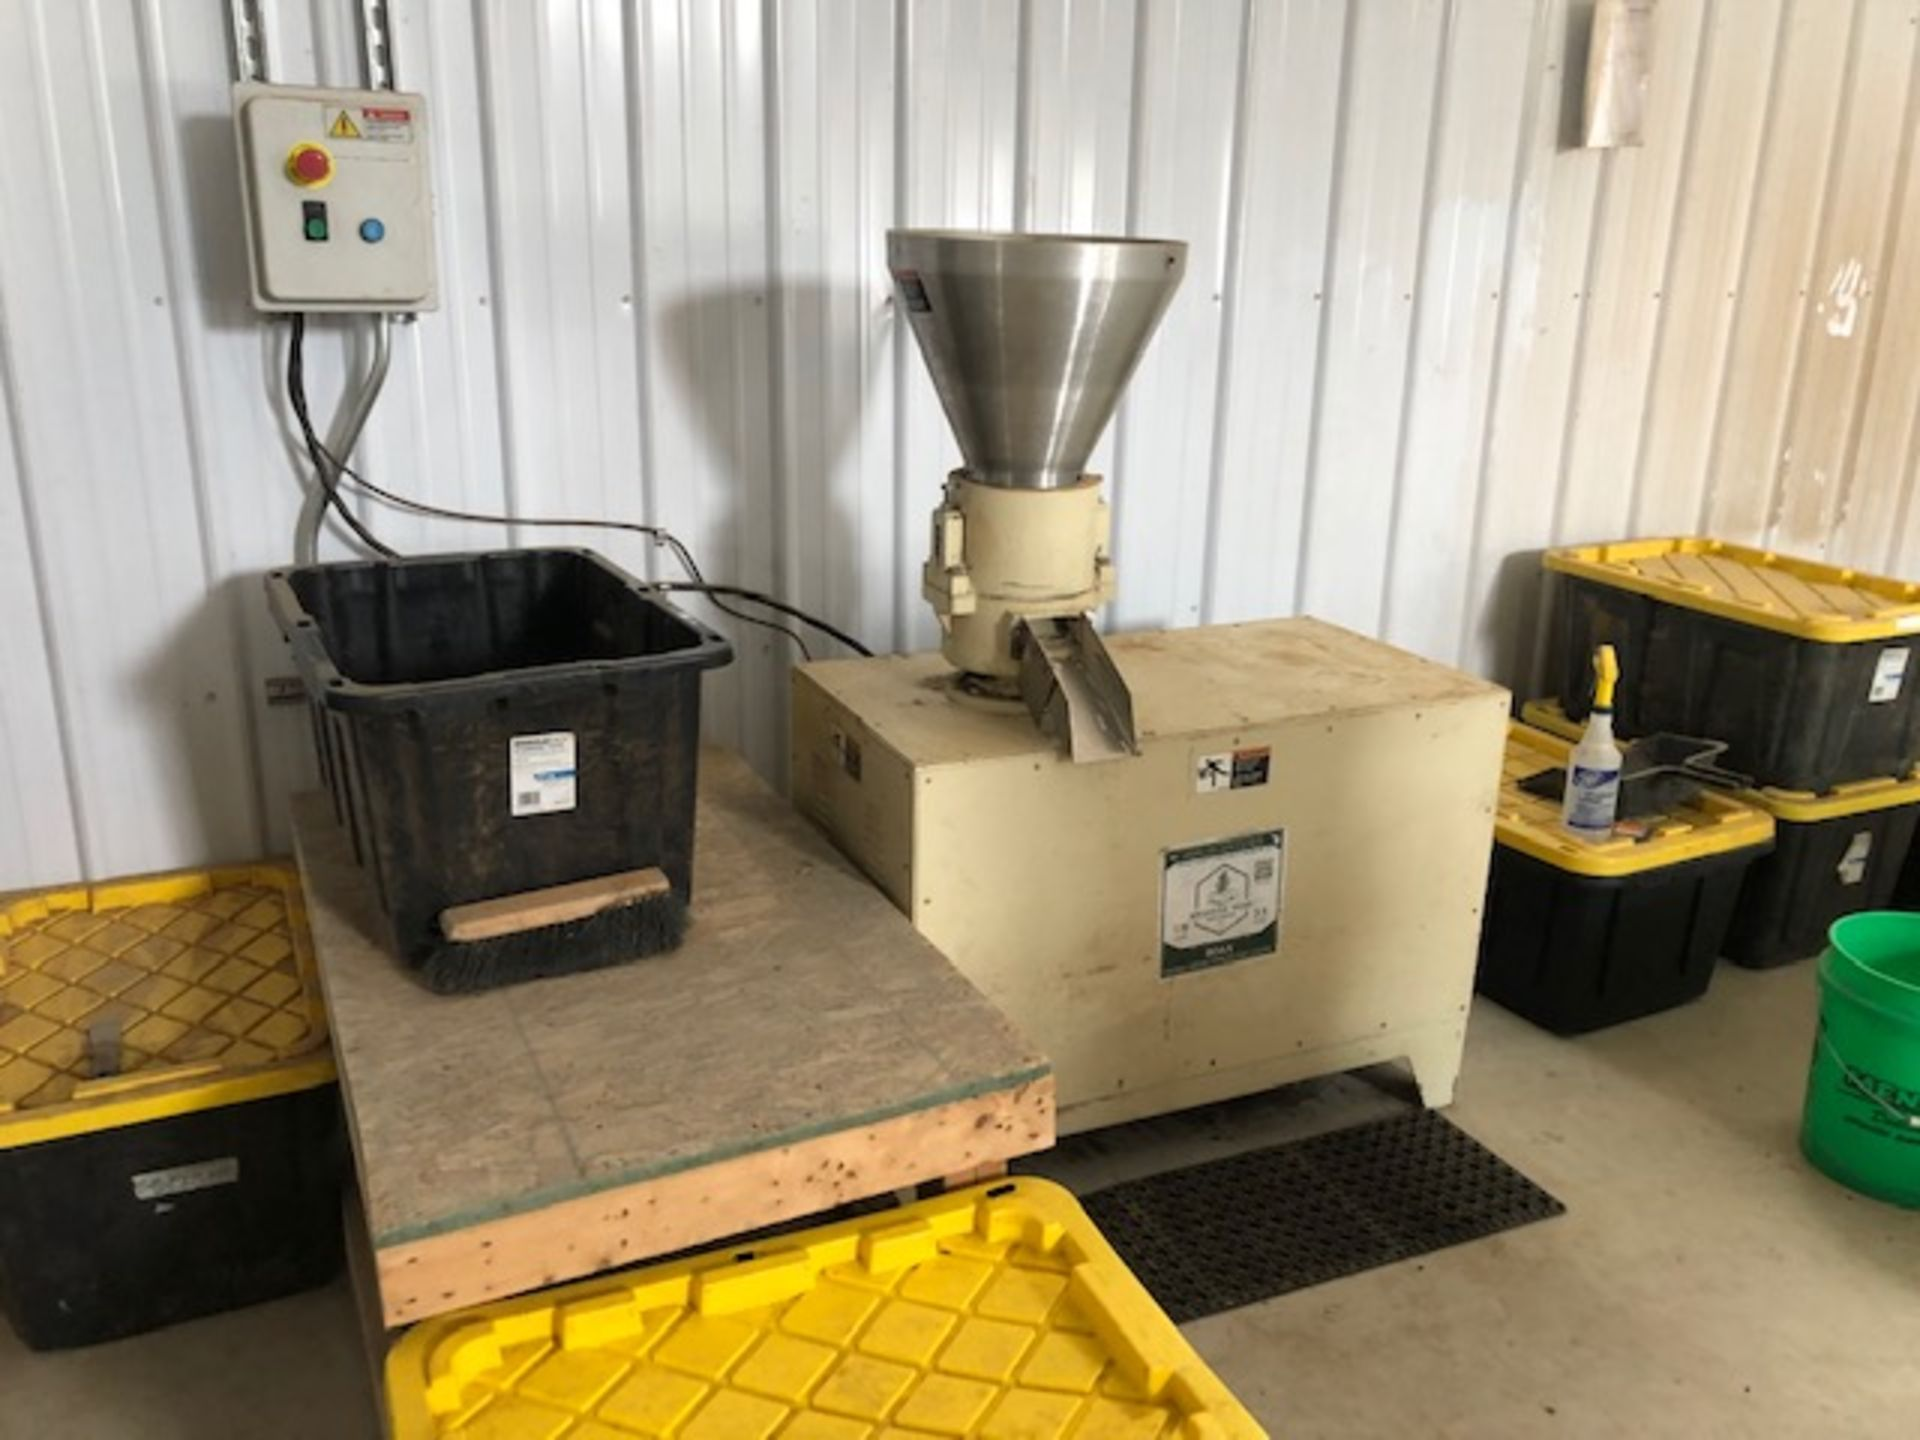 Used - MRX Supercritical CO2 Extractor Complete System. See details in description full inventory - Image 20 of 29